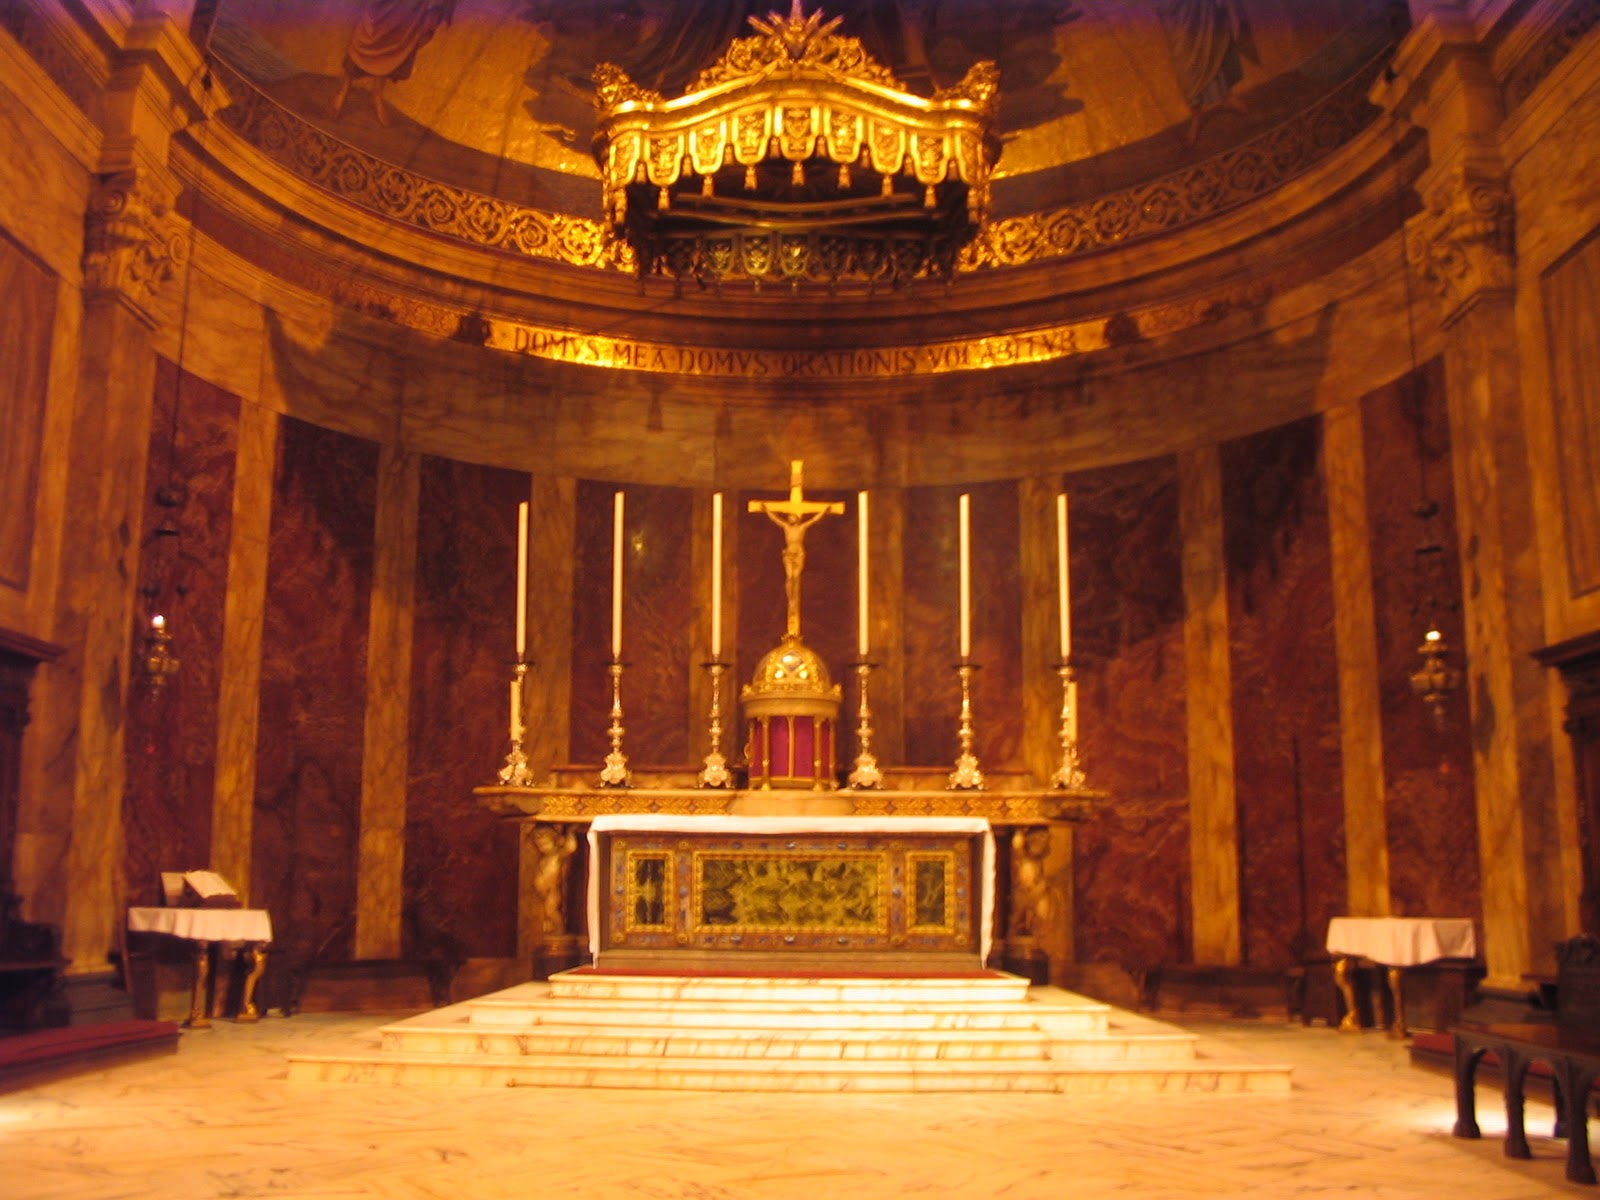 Meaning Of The Tabernacle Lamp In Catholic Churches